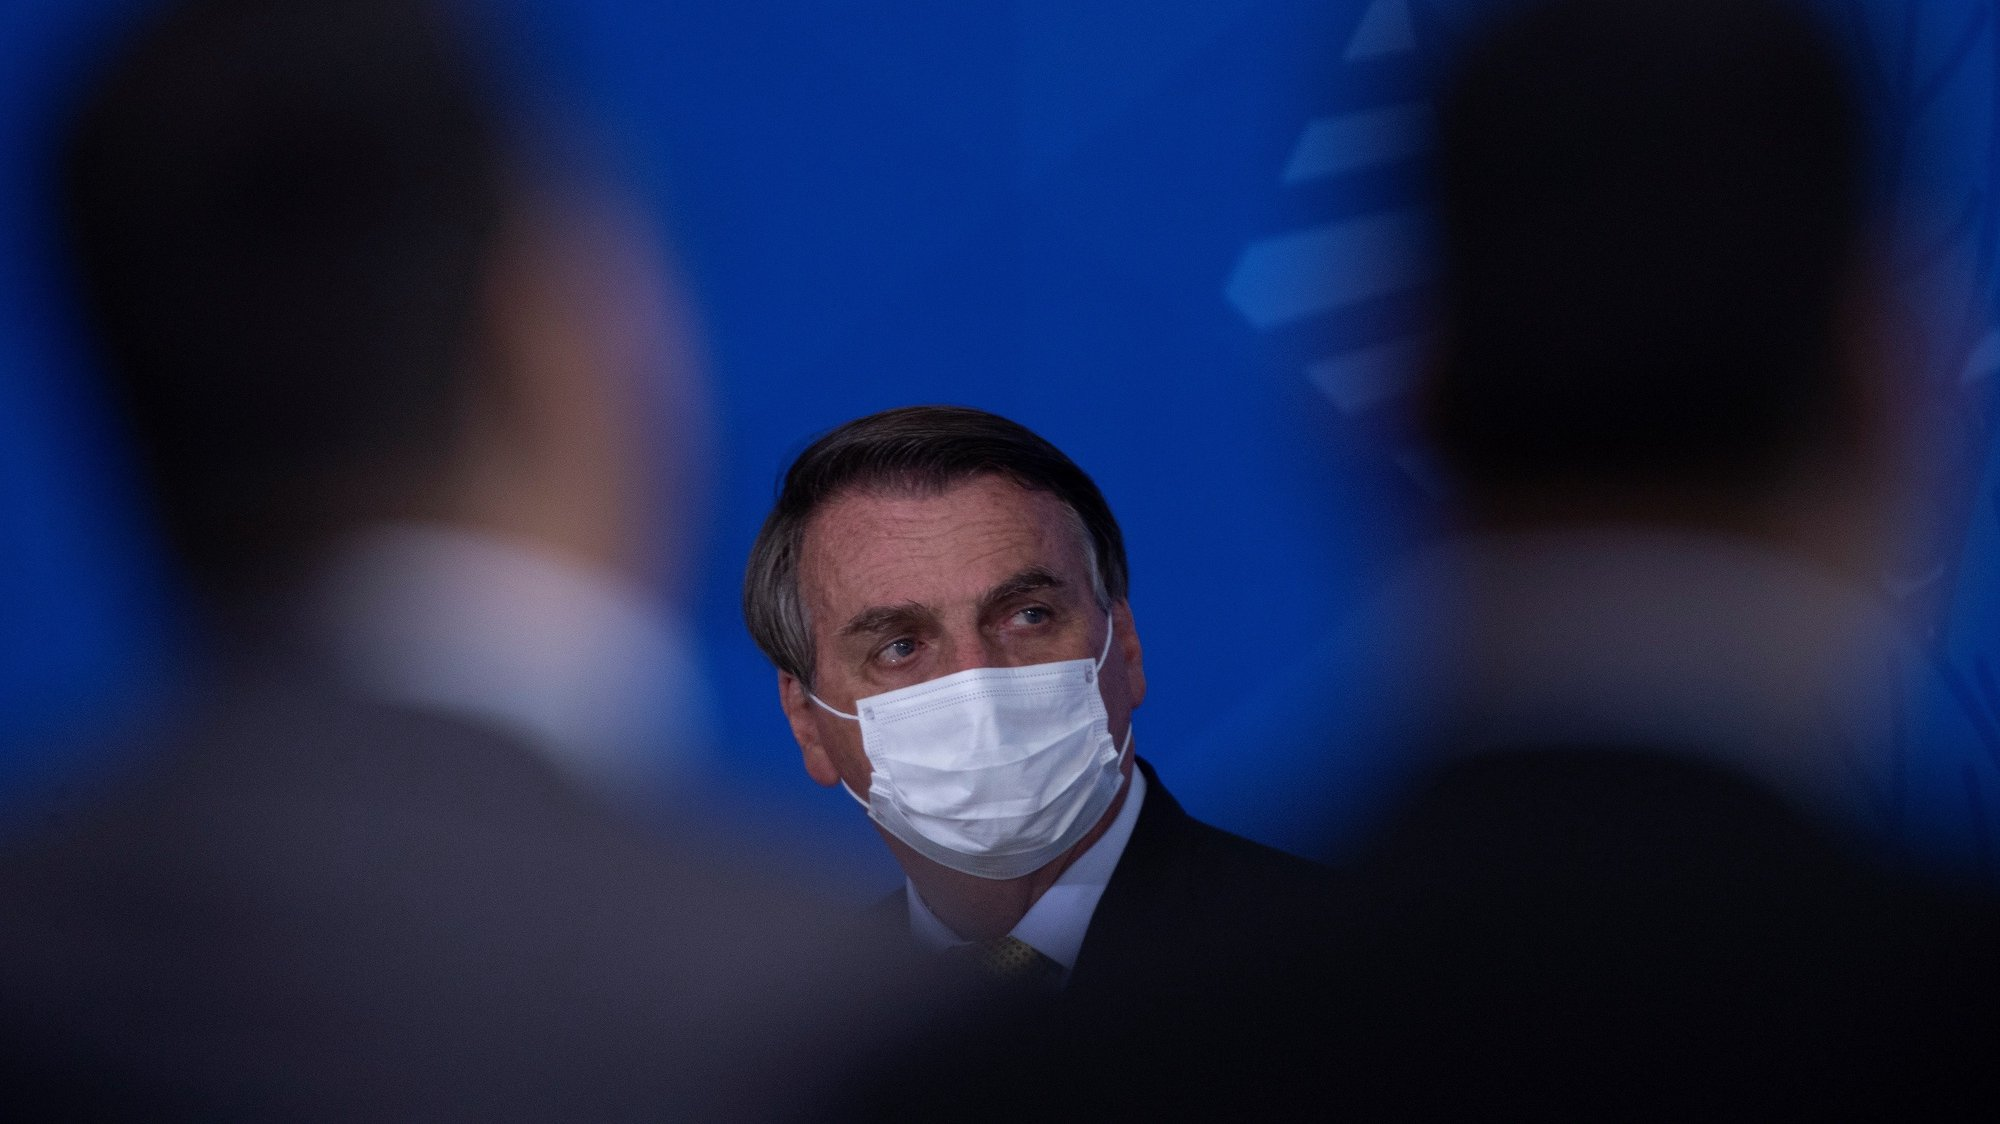 epa09312306 President of Brazil, Jair Bolsonaro, participates in a launch ceremony of the new registration system for Professional Fishermen and Rede Pesca Brasil, at the city's Planalto Palace from Brasilia, Brazil 29 June 2021. The Brazilian Minister of Health, Marcelo Queiroga, announced that the contract signed for the purchase of the Indian vaccine against covid-19, Covaxin, will be 'on hold' until complaints of irregularities in these negotiations are clarified.  EPA/Joedson Alves